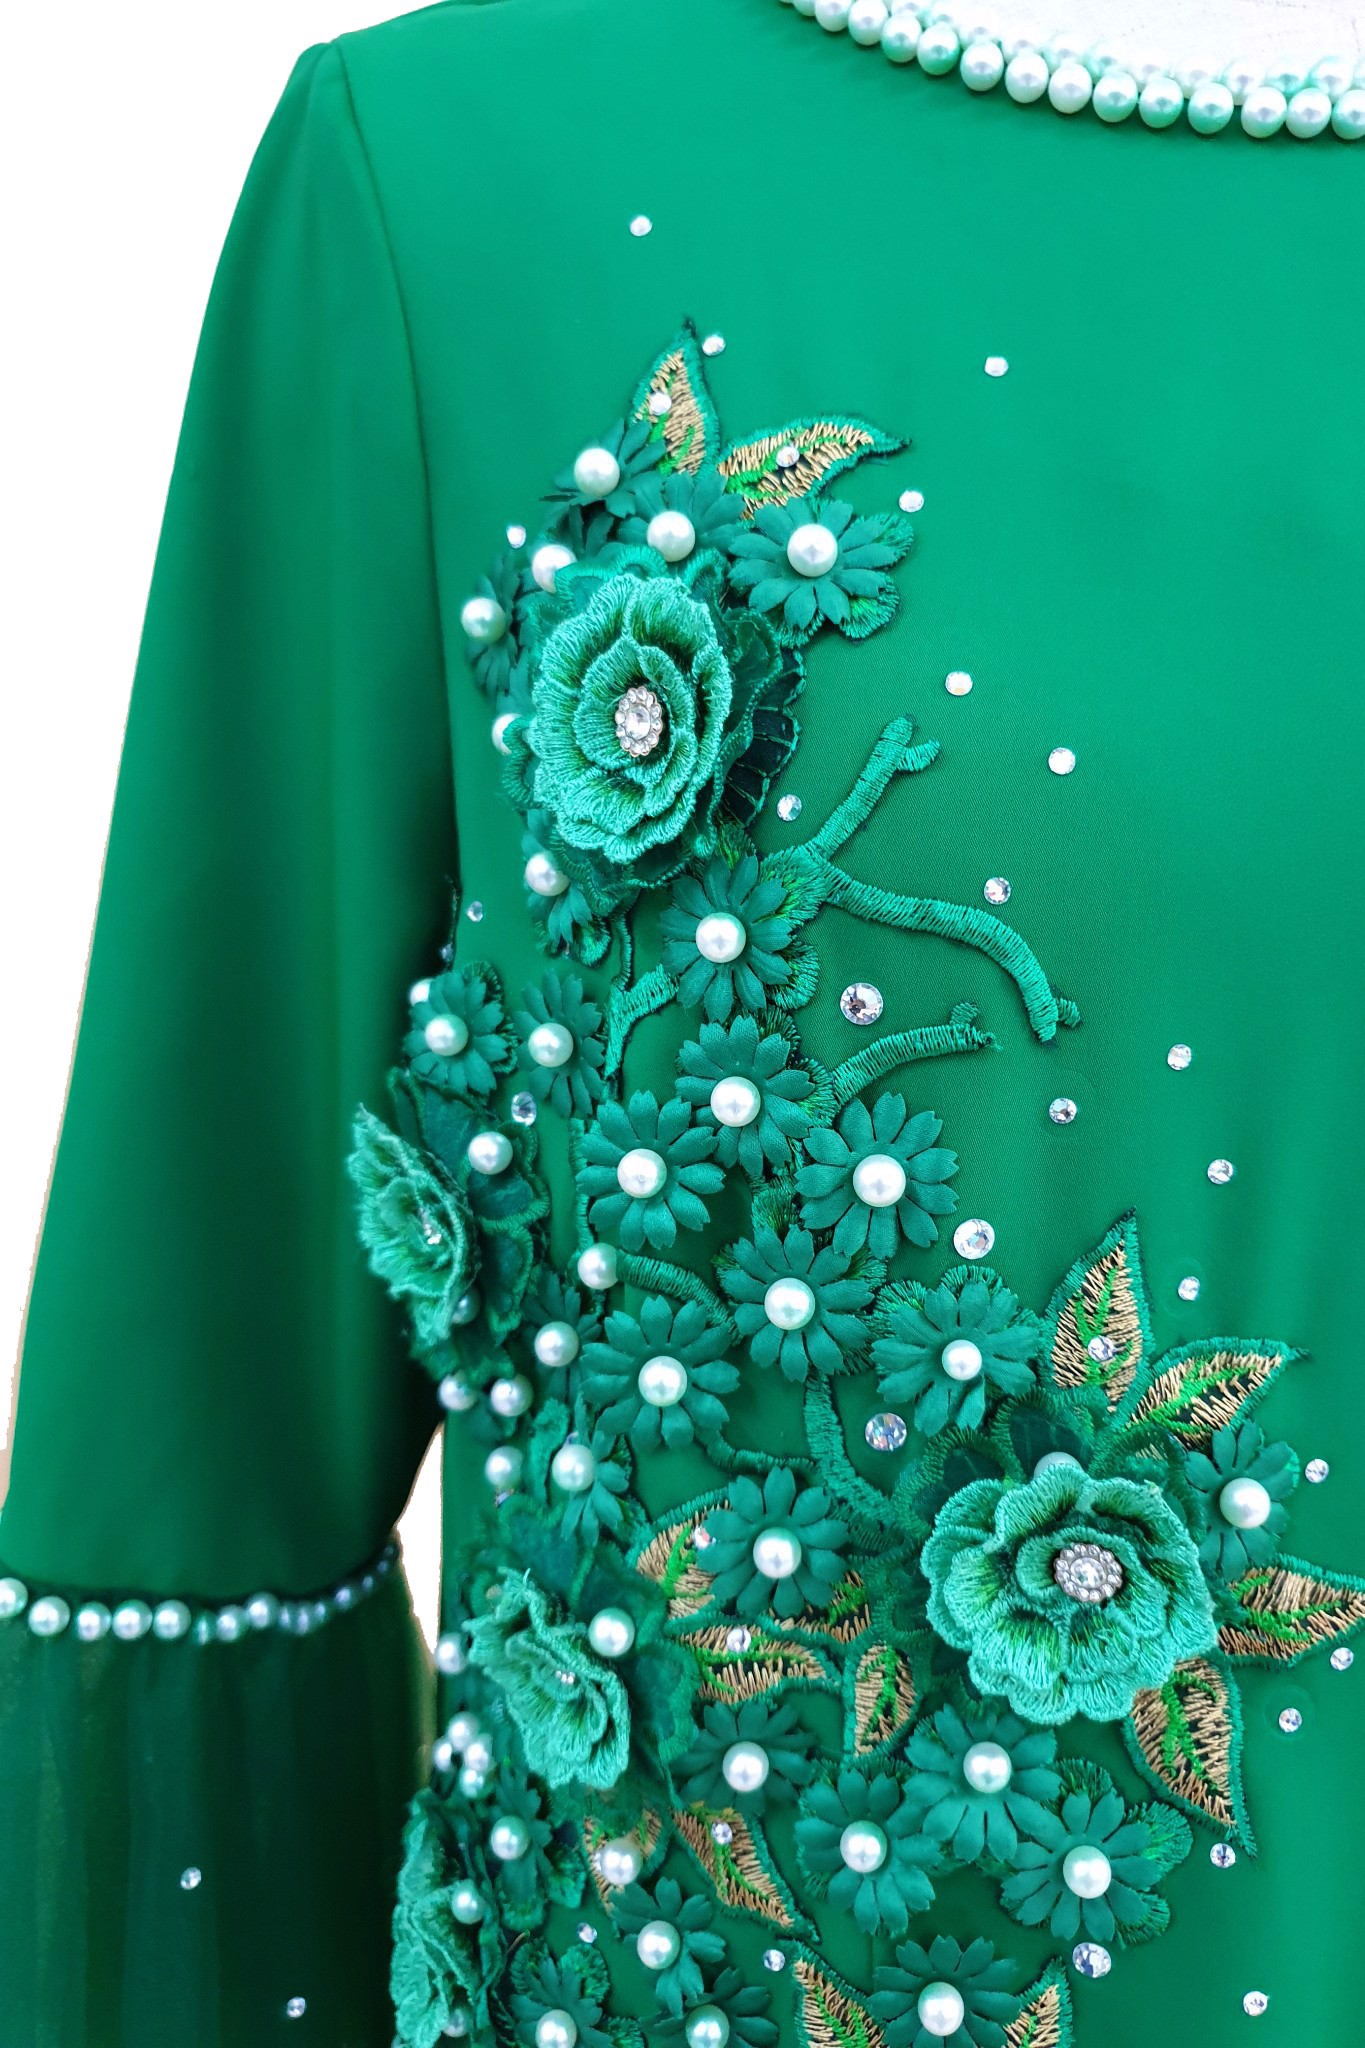 Arctic Dawn Camellia green dress